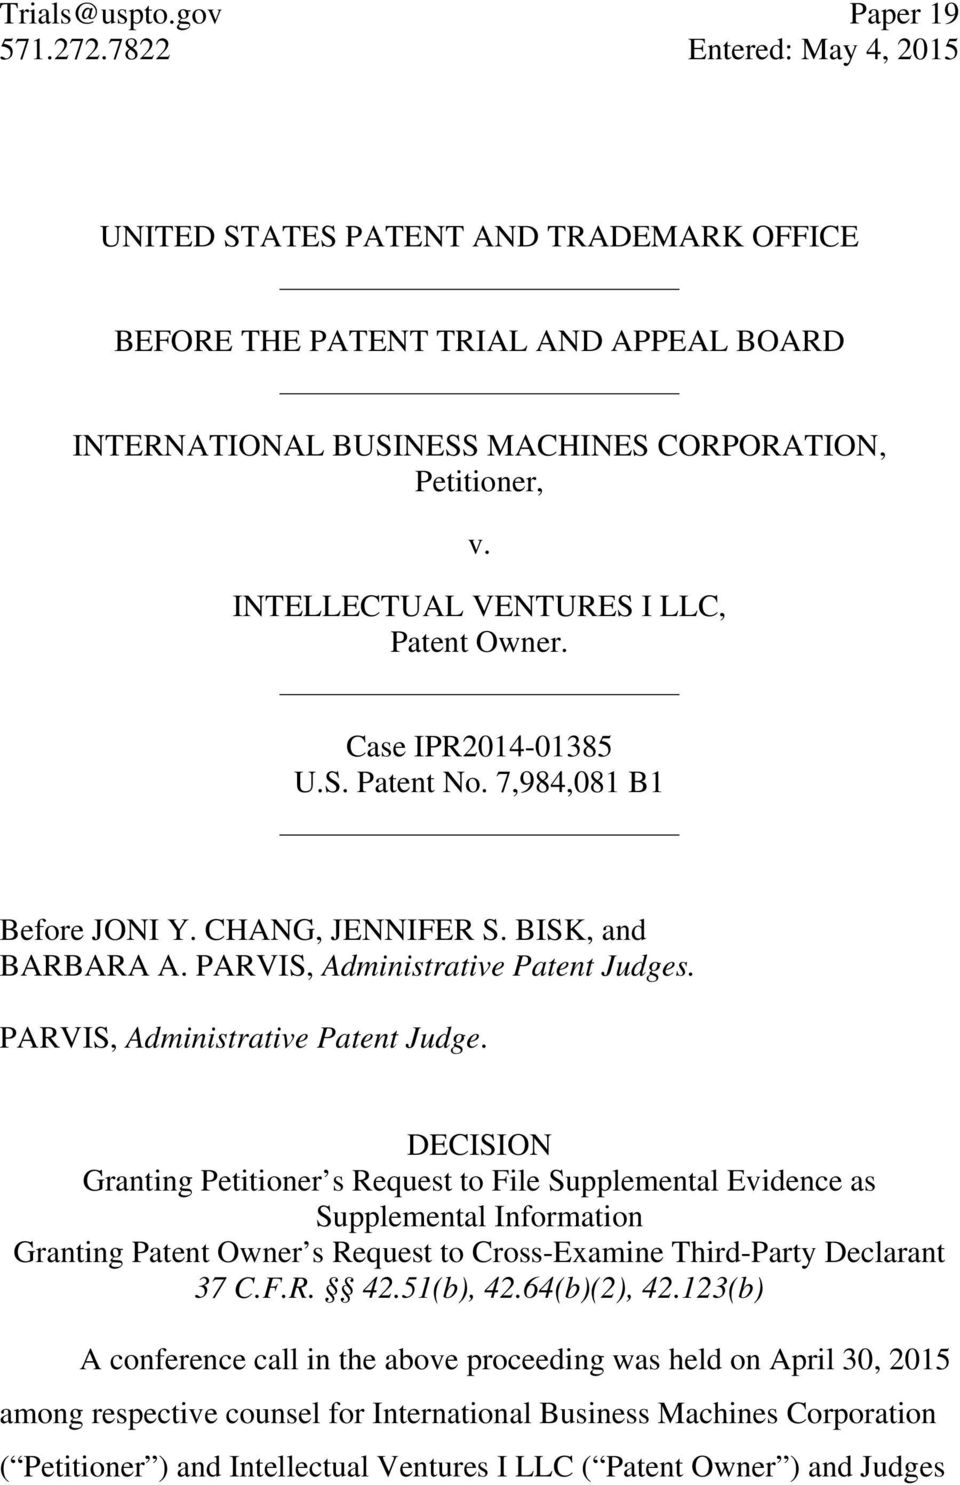 INTELLECTUAL VENTURES I LLC, Patent Owner. Case IPR2014-01385 U.S. Patent No. 7,984,081 B1 Before JONI Y. CHANG, JENNIFER S. BISK, and BARBARA A. PARVIS, Administrative Patent Judges.